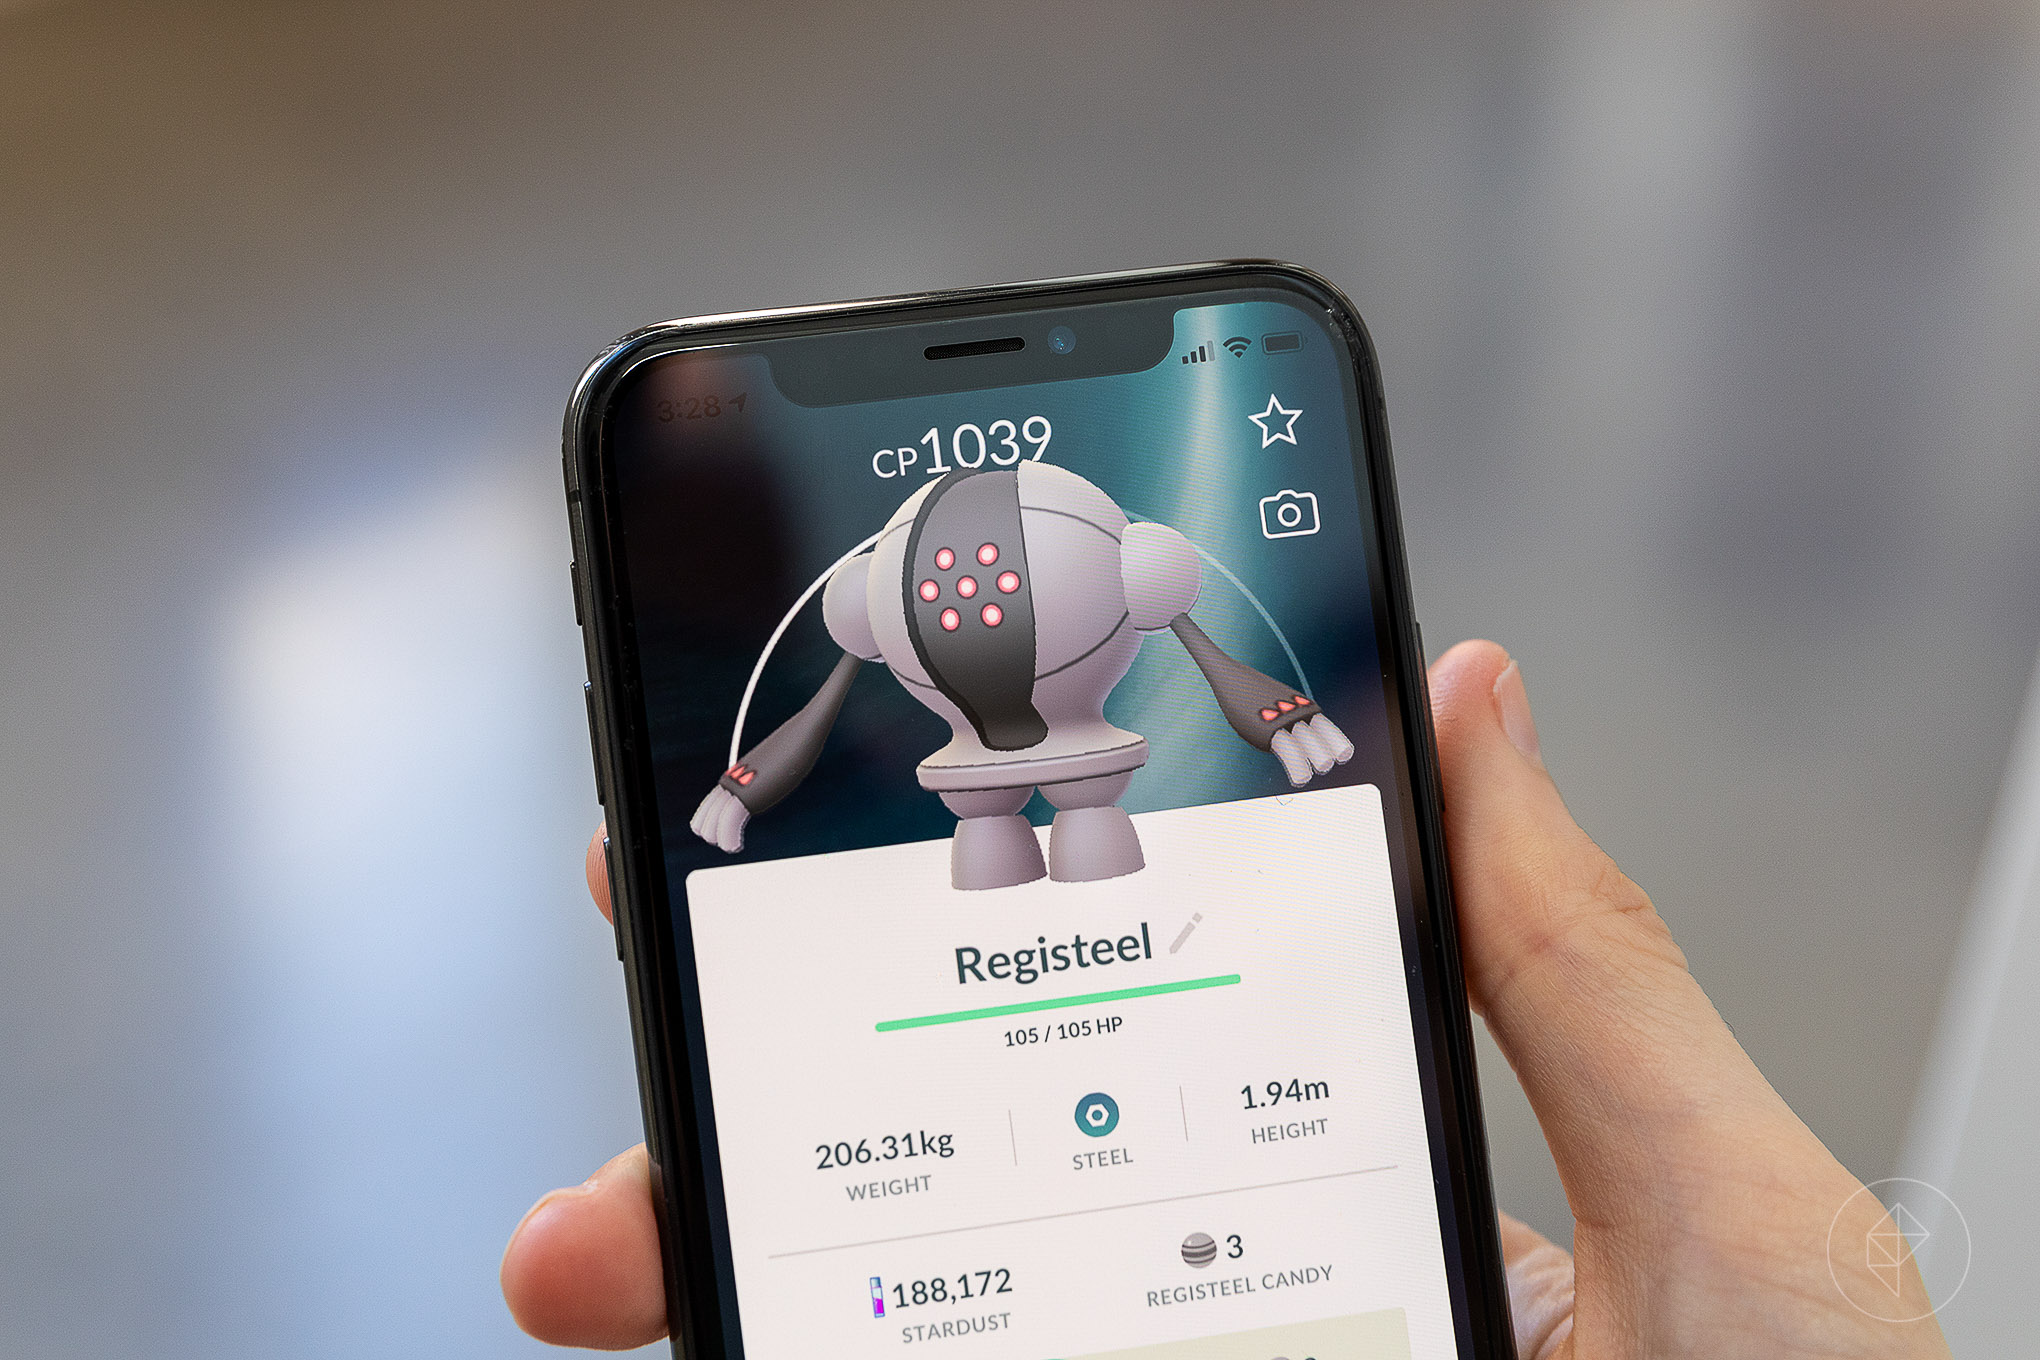 Pokémon Go Registeel raid guide: counters and best movesets